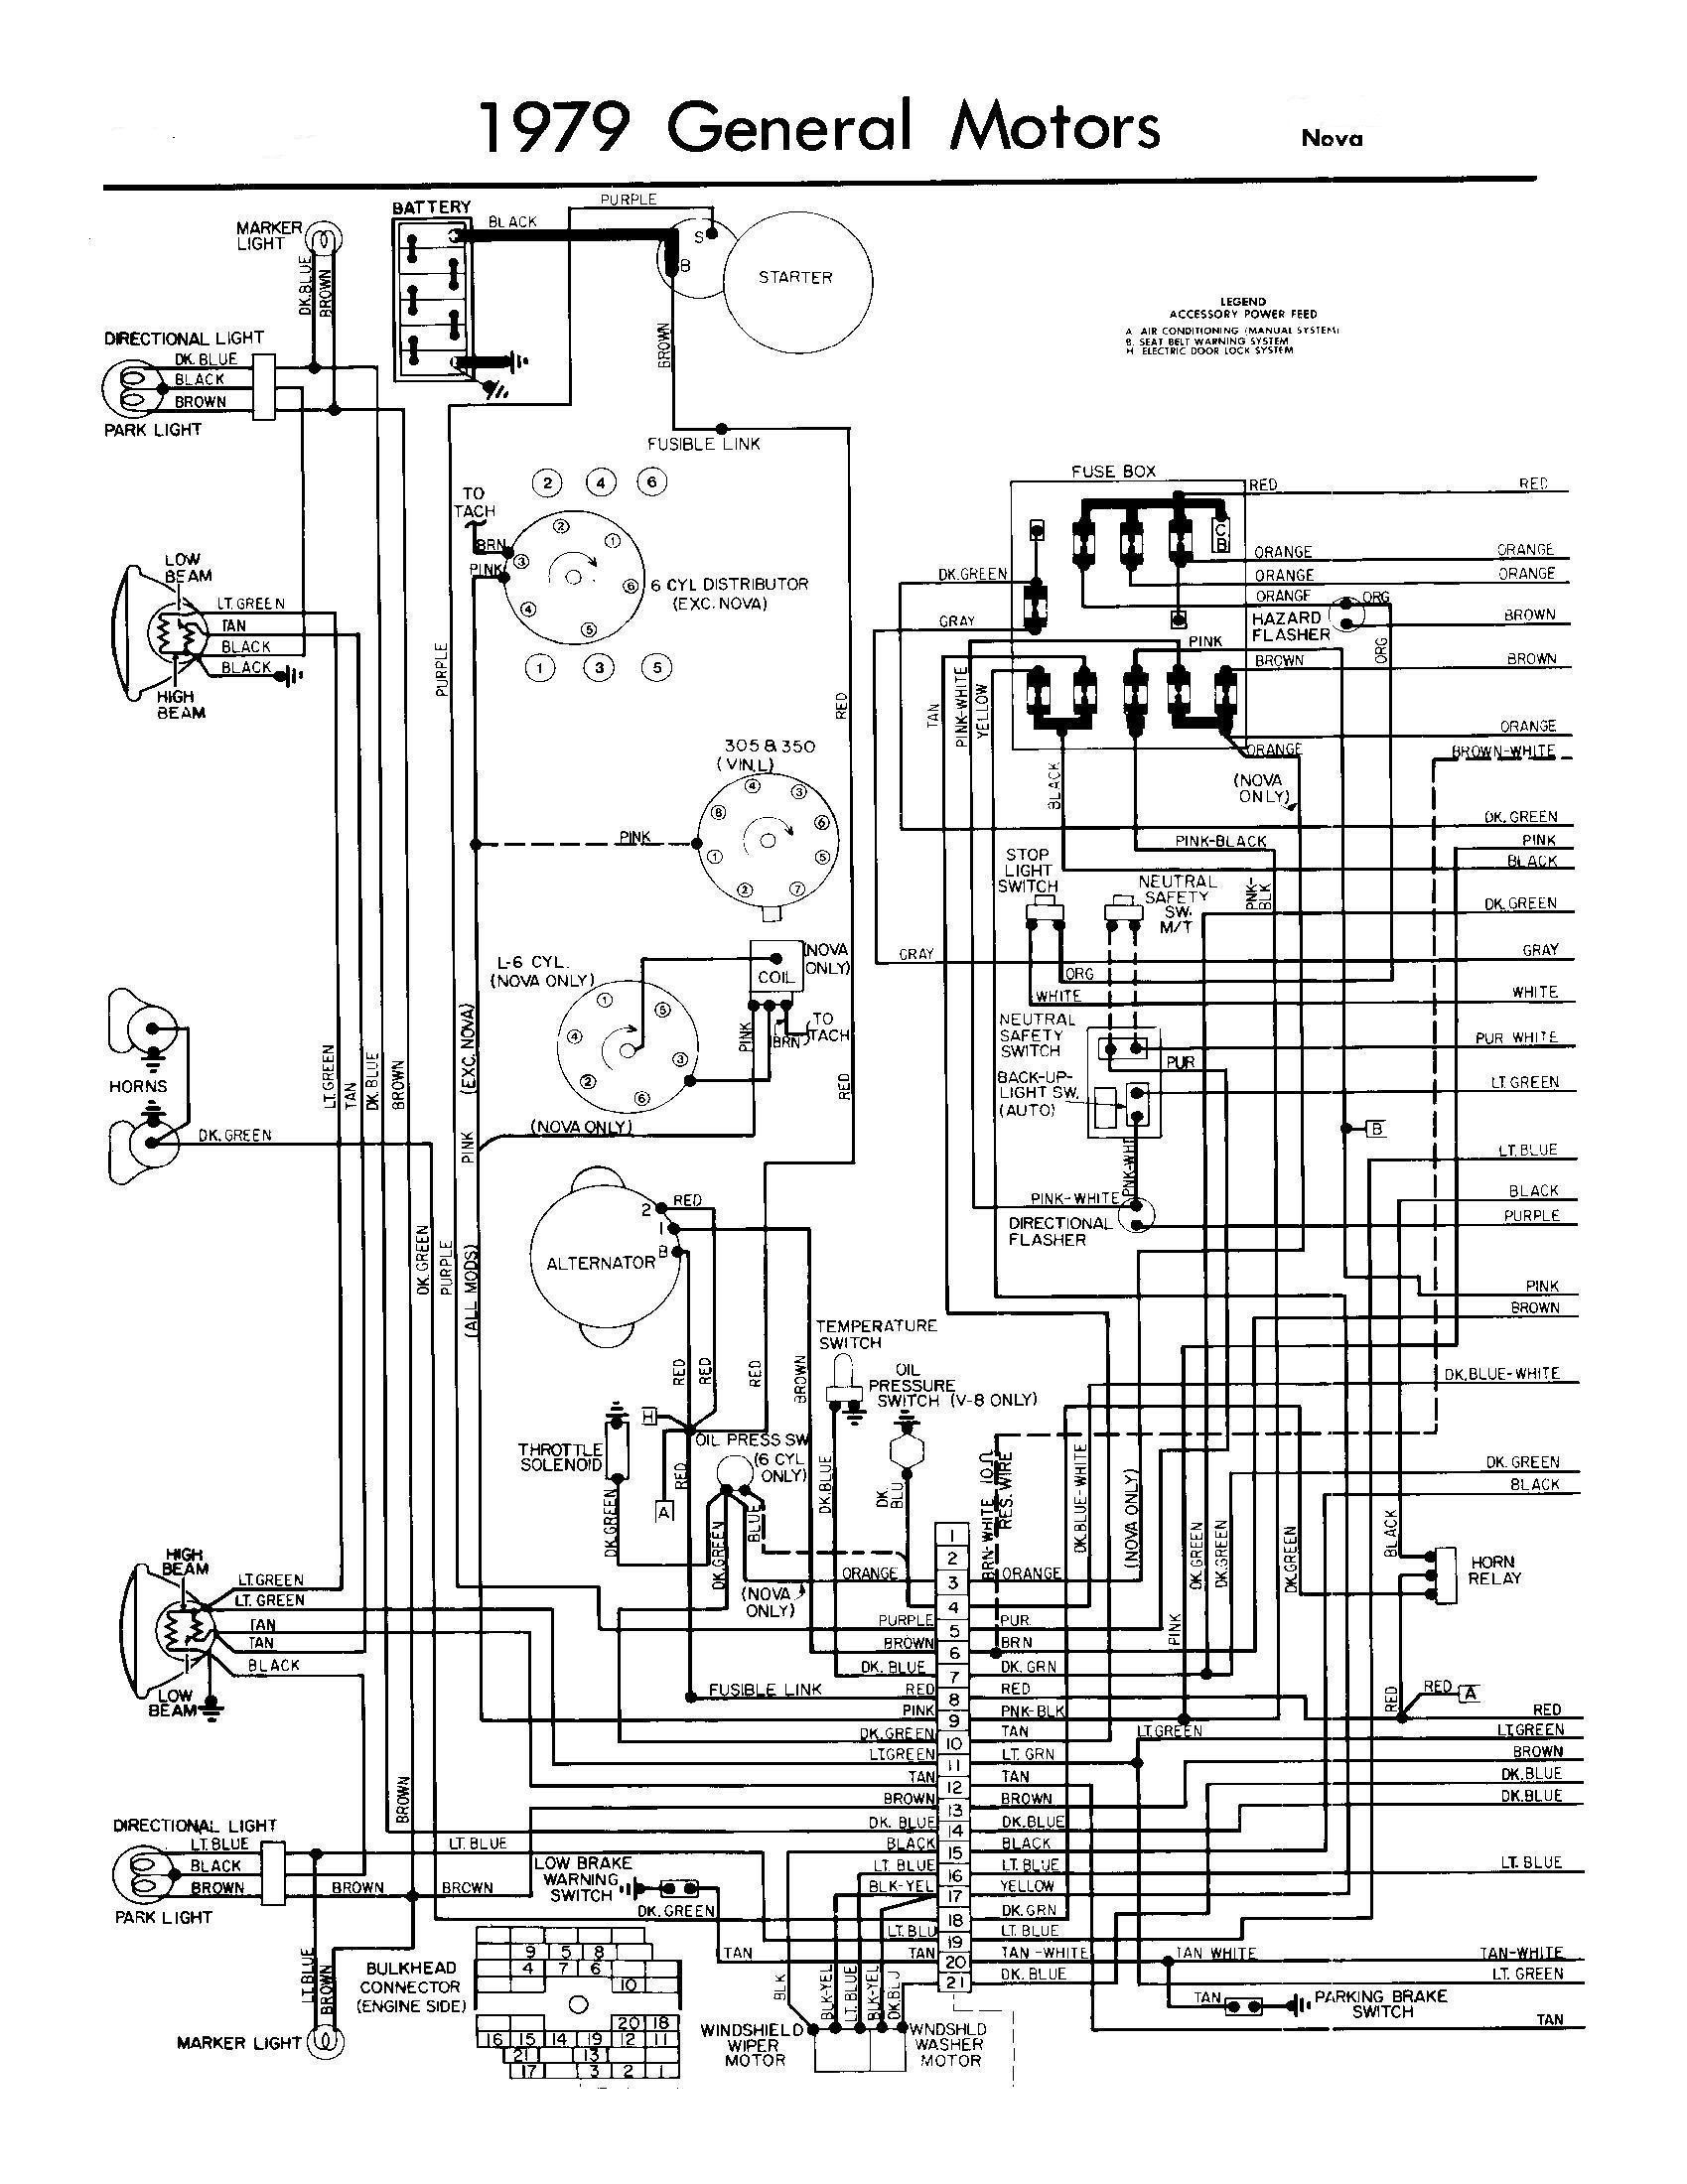 free gm wiring diagrams simple wiring schema gm wiring diagrams online 04 chevy silverado wiring diagrams get free image about wiring diagram free online wiring diagrams free gm wiring diagrams